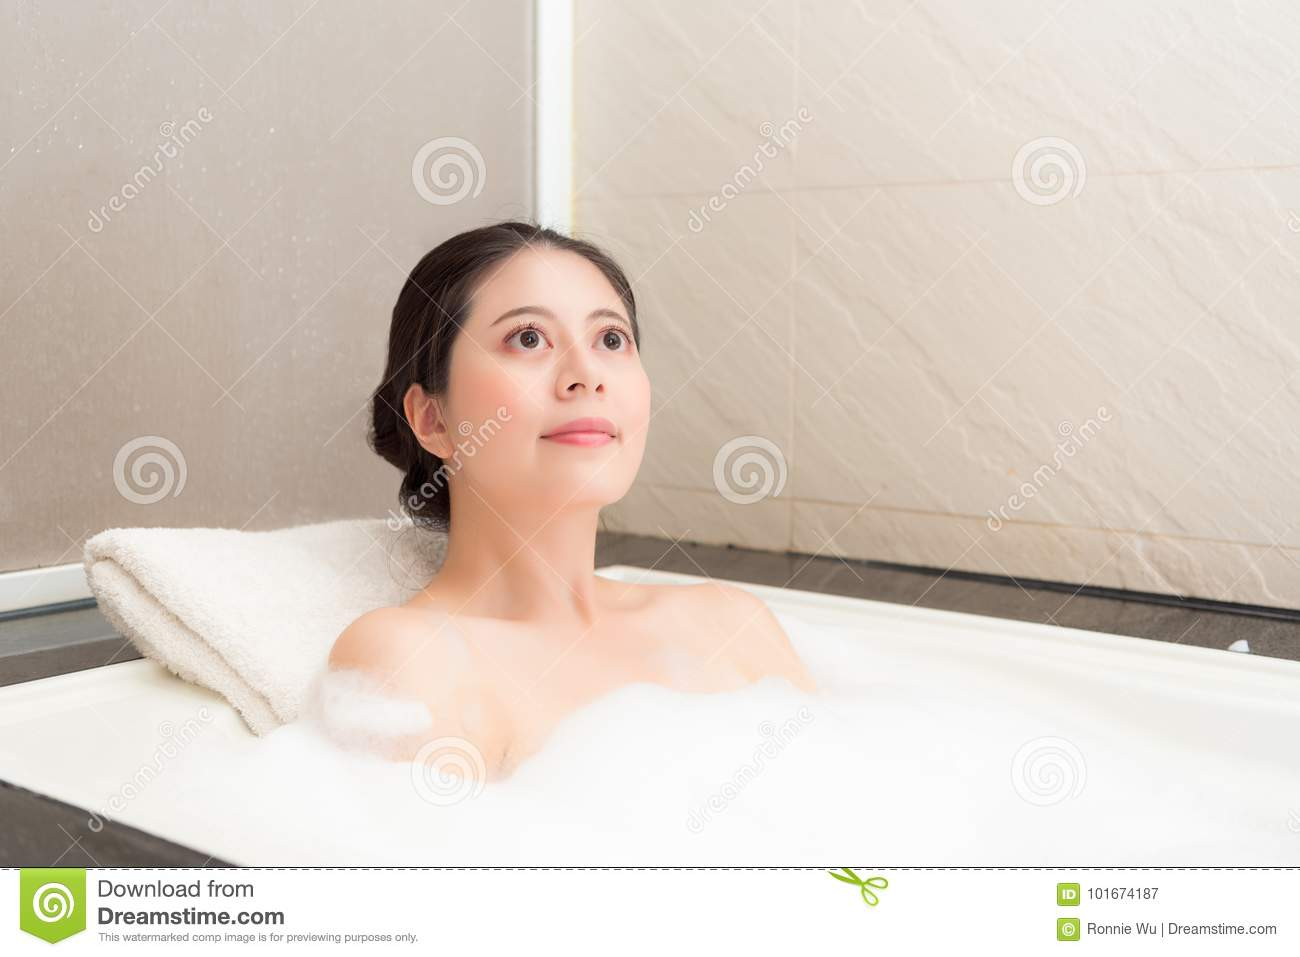 Smiling Beautiful Woman Relaxing In Bathtub Stock Image - Image of ...